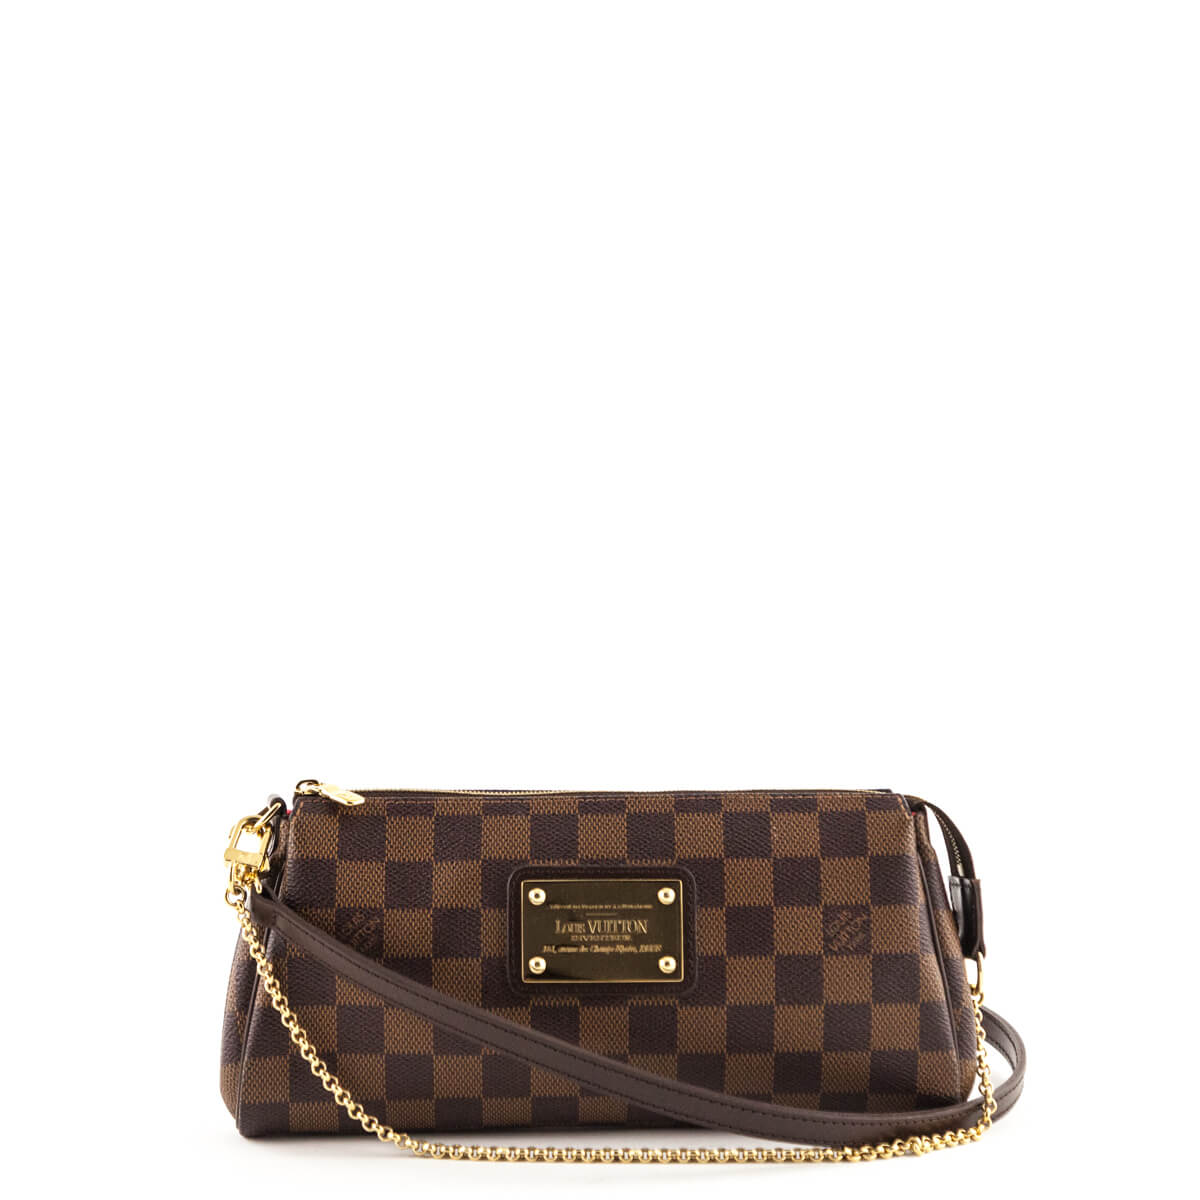 e0c5da6035be Louis Vuitton Damier Ebene Eva Clutch - LOVE that BAG - Preowned Authentic  Designer Handbags ...